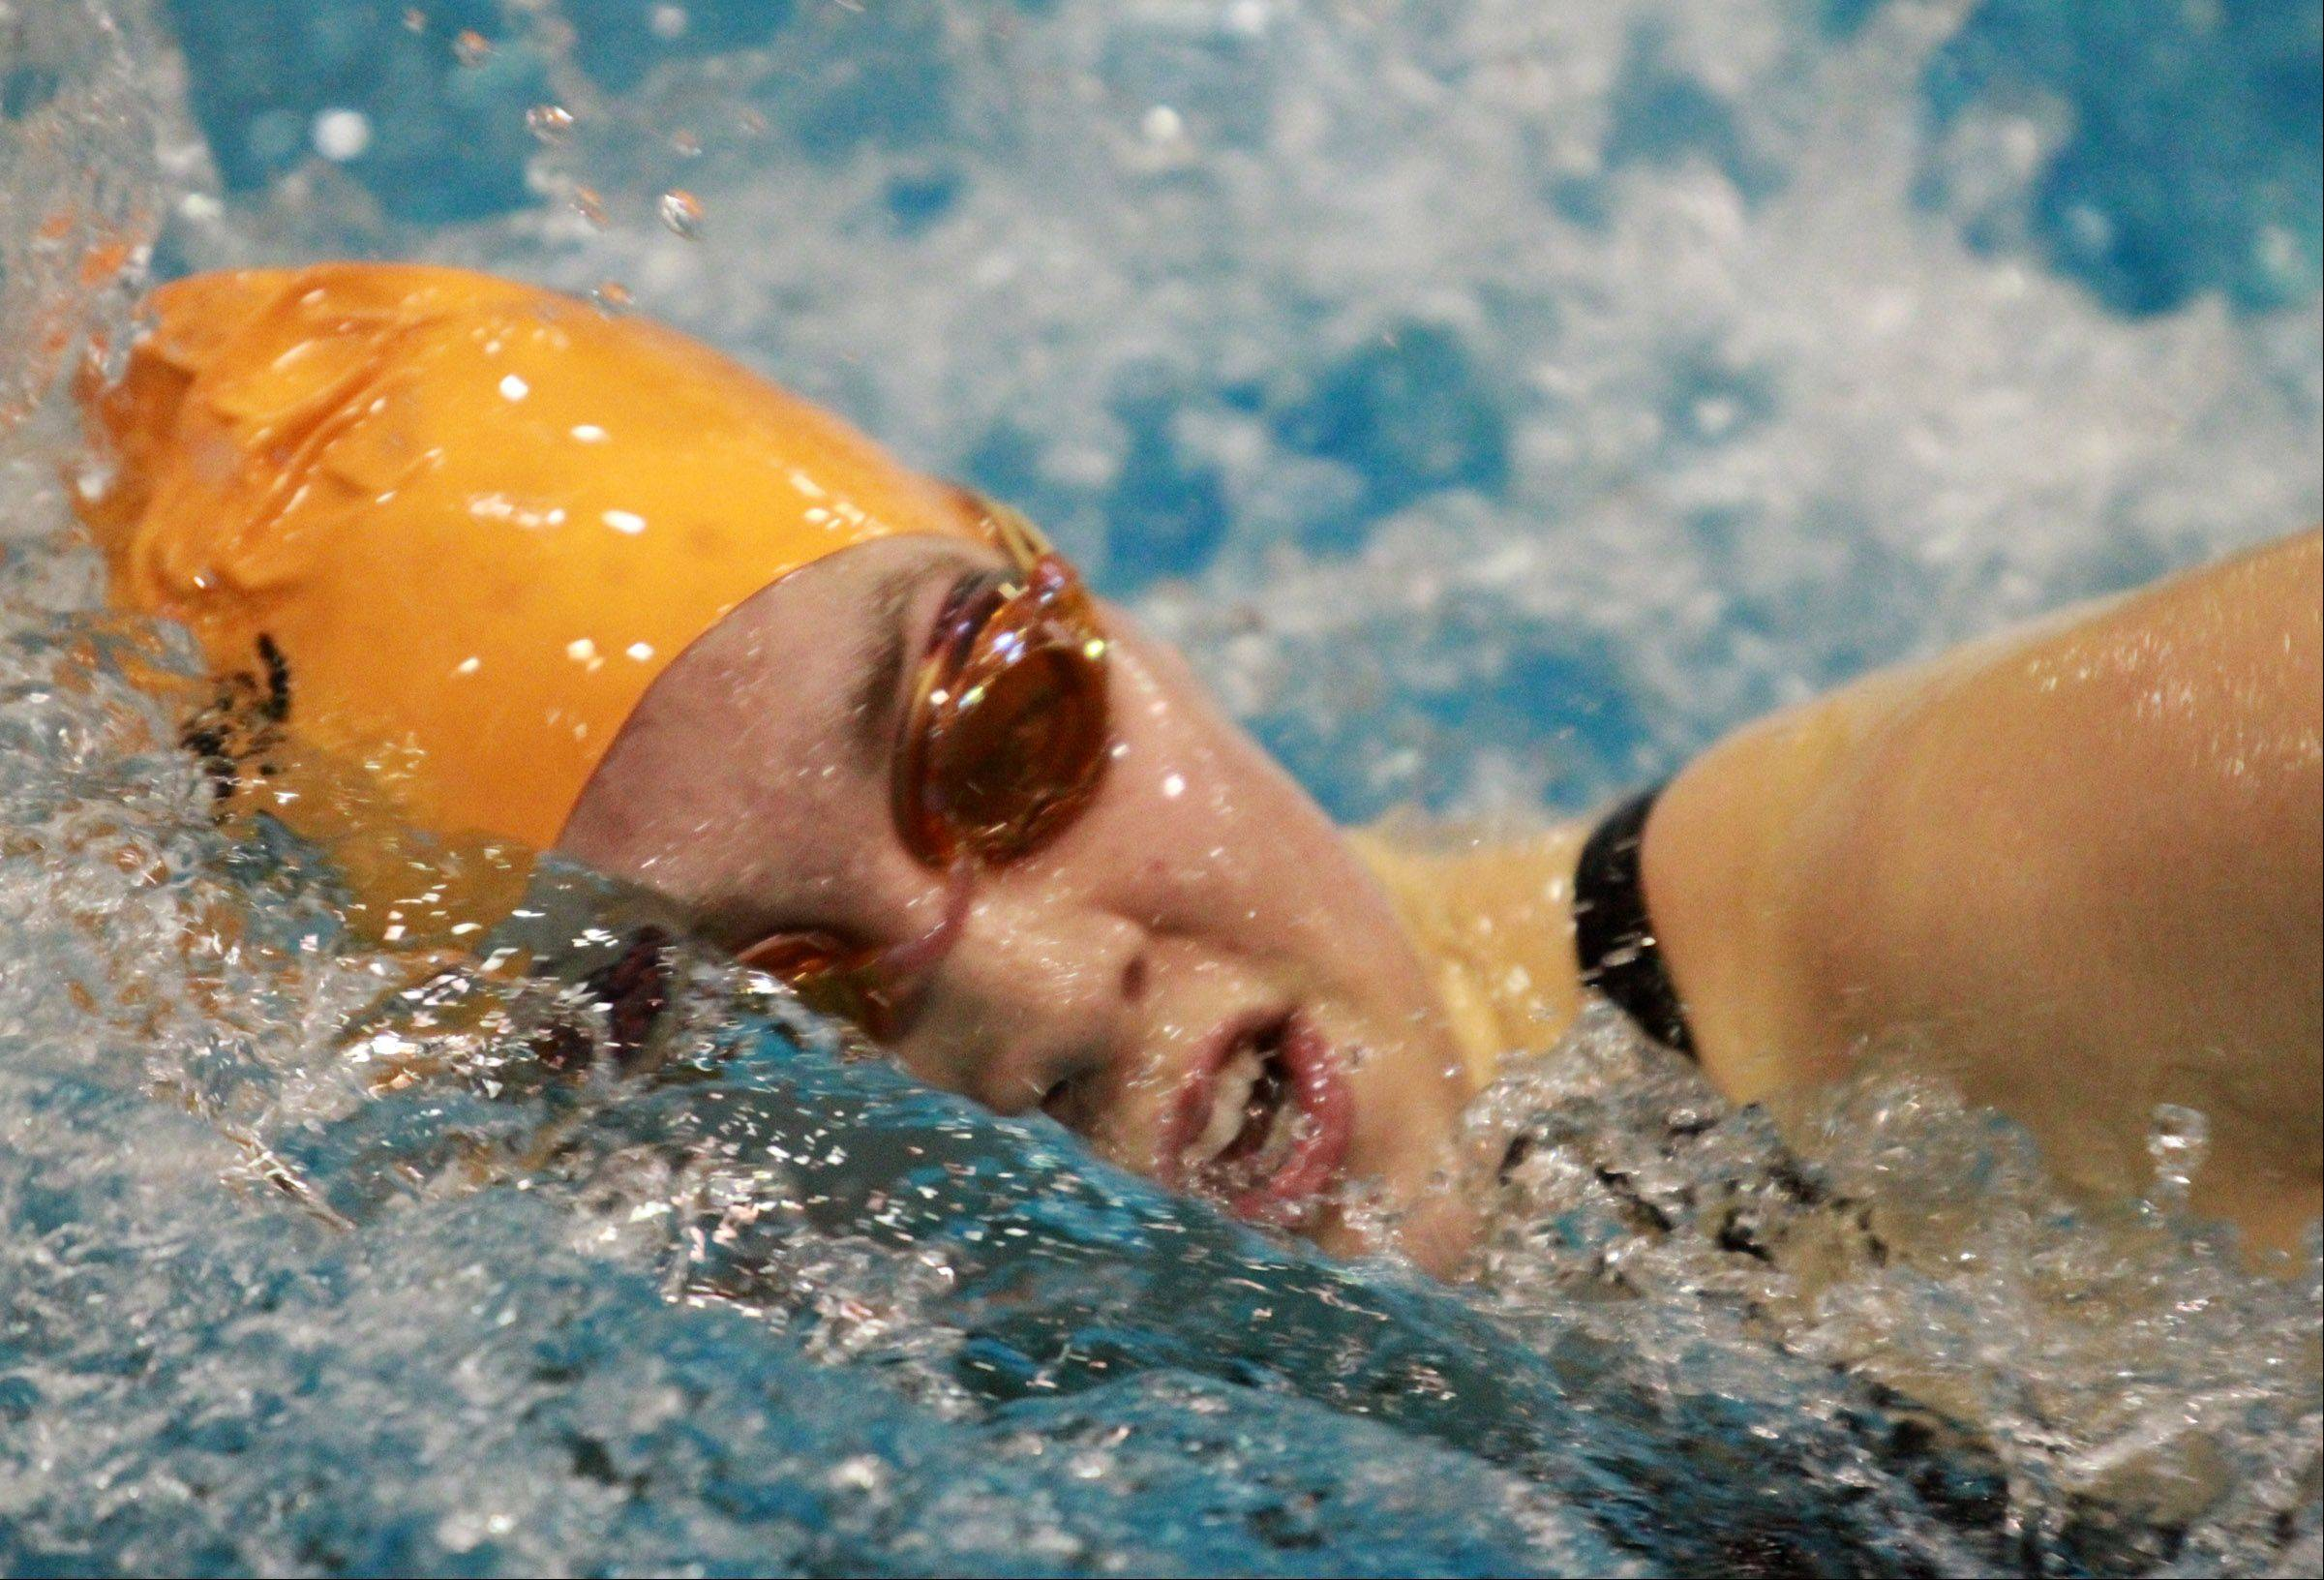 St. Charles' Izzie Bindseil placed eight in the 200 yard freestyle at the girls state swimming finals on Saturday in Winnetka.